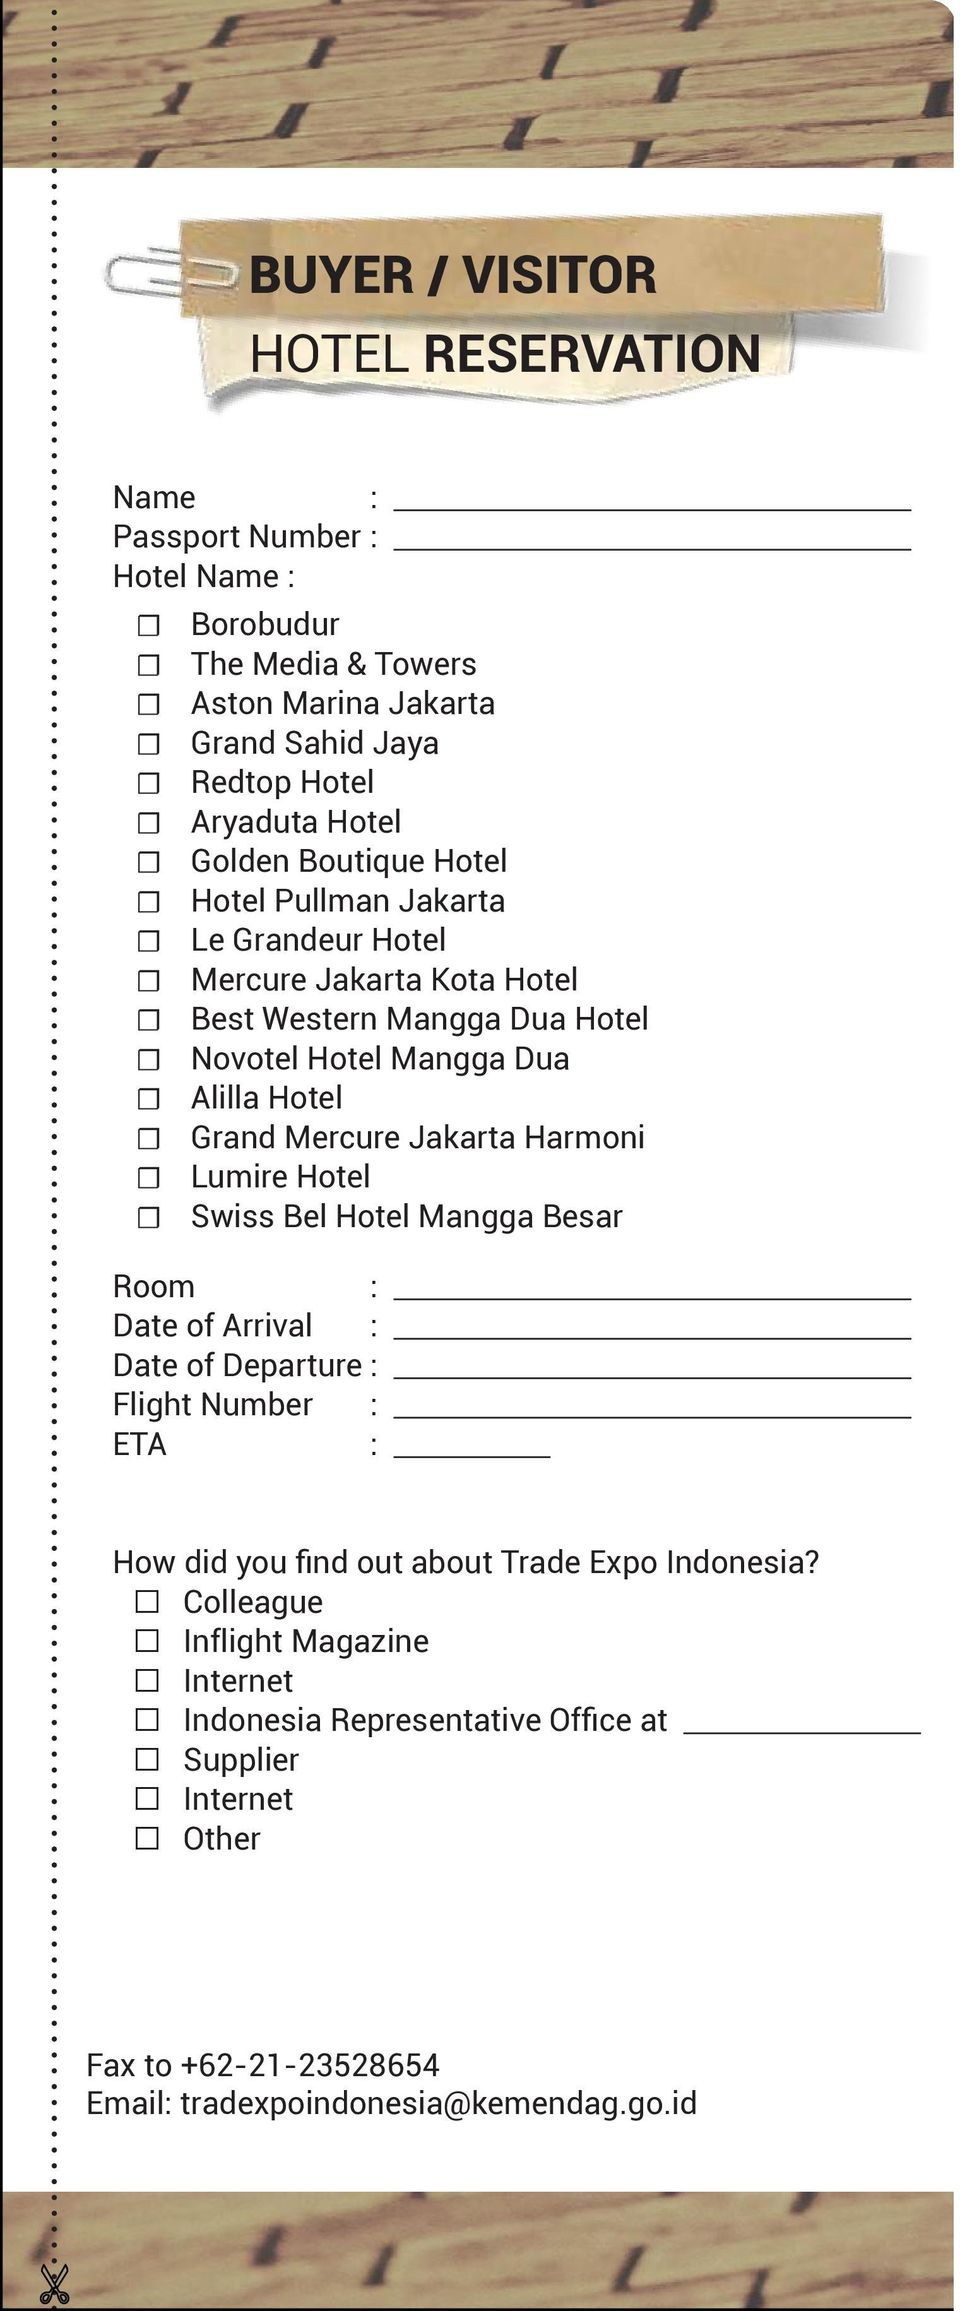 Mercure Jakarta Harmoni Lumire Hotel Swiss Bel Hotel Mangga Besar Room : Date of Arrival : Date of Departure : Flight Number : ETA : How did you find out about Trade